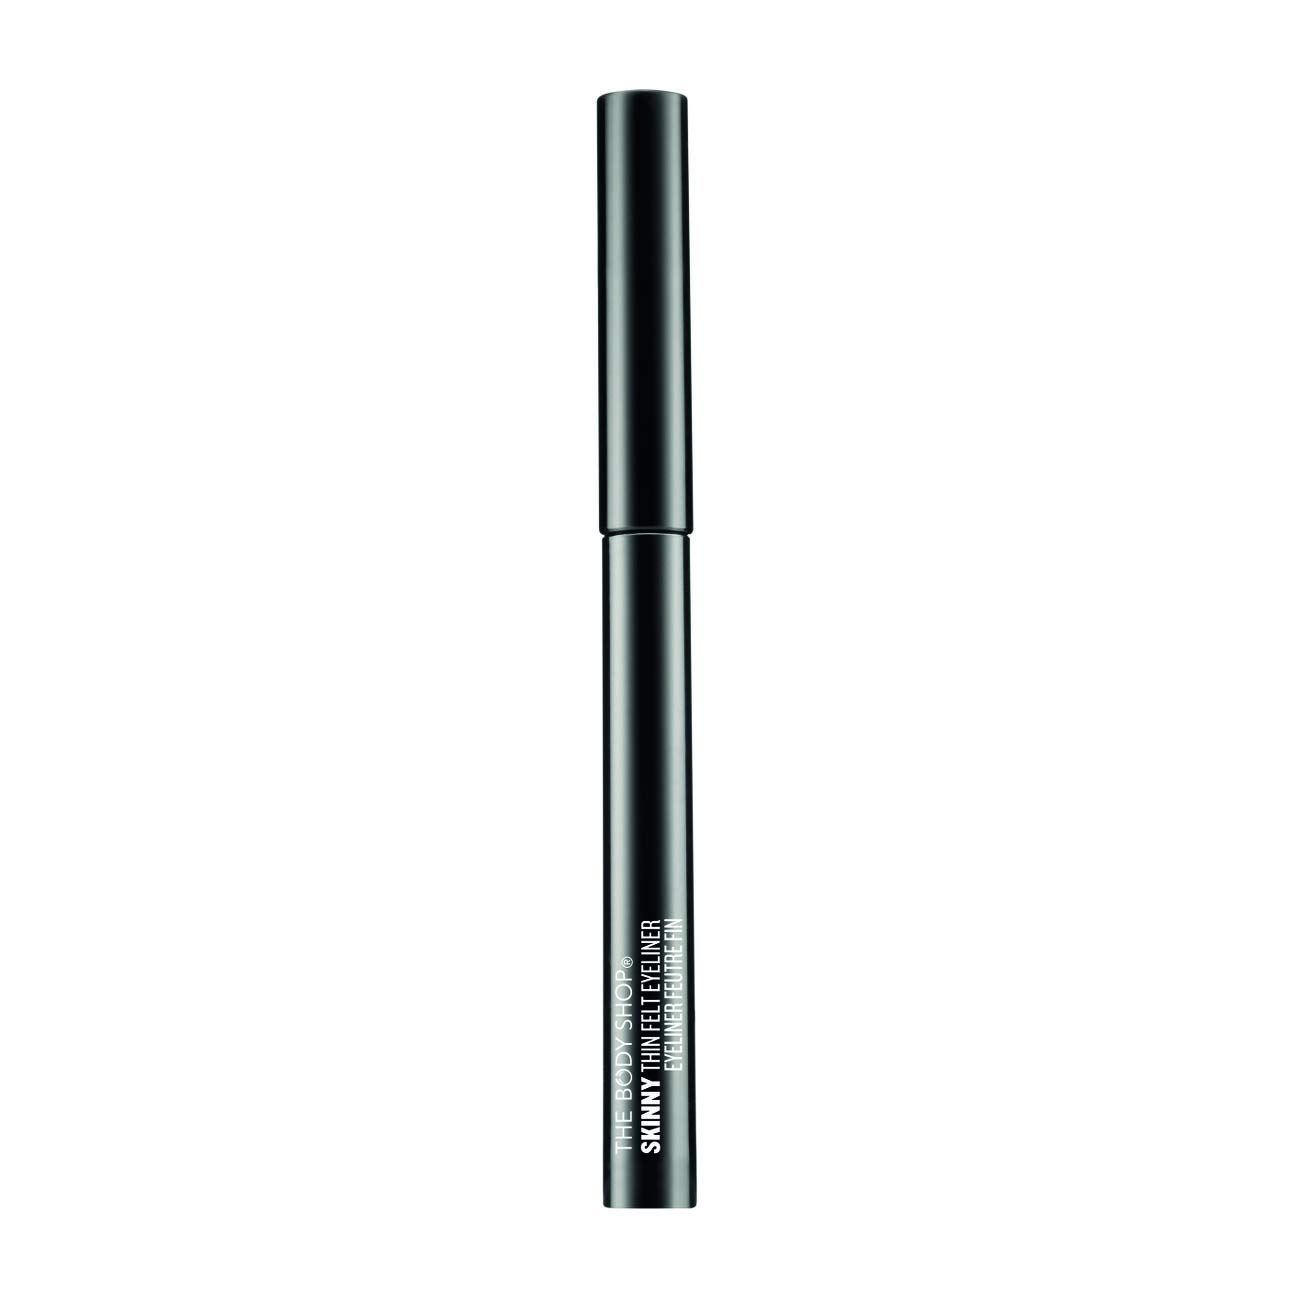 The Body Shop Skinny Felt Black Outlet Direct stock discount sale feature Eyeliner 0.03 Ounce